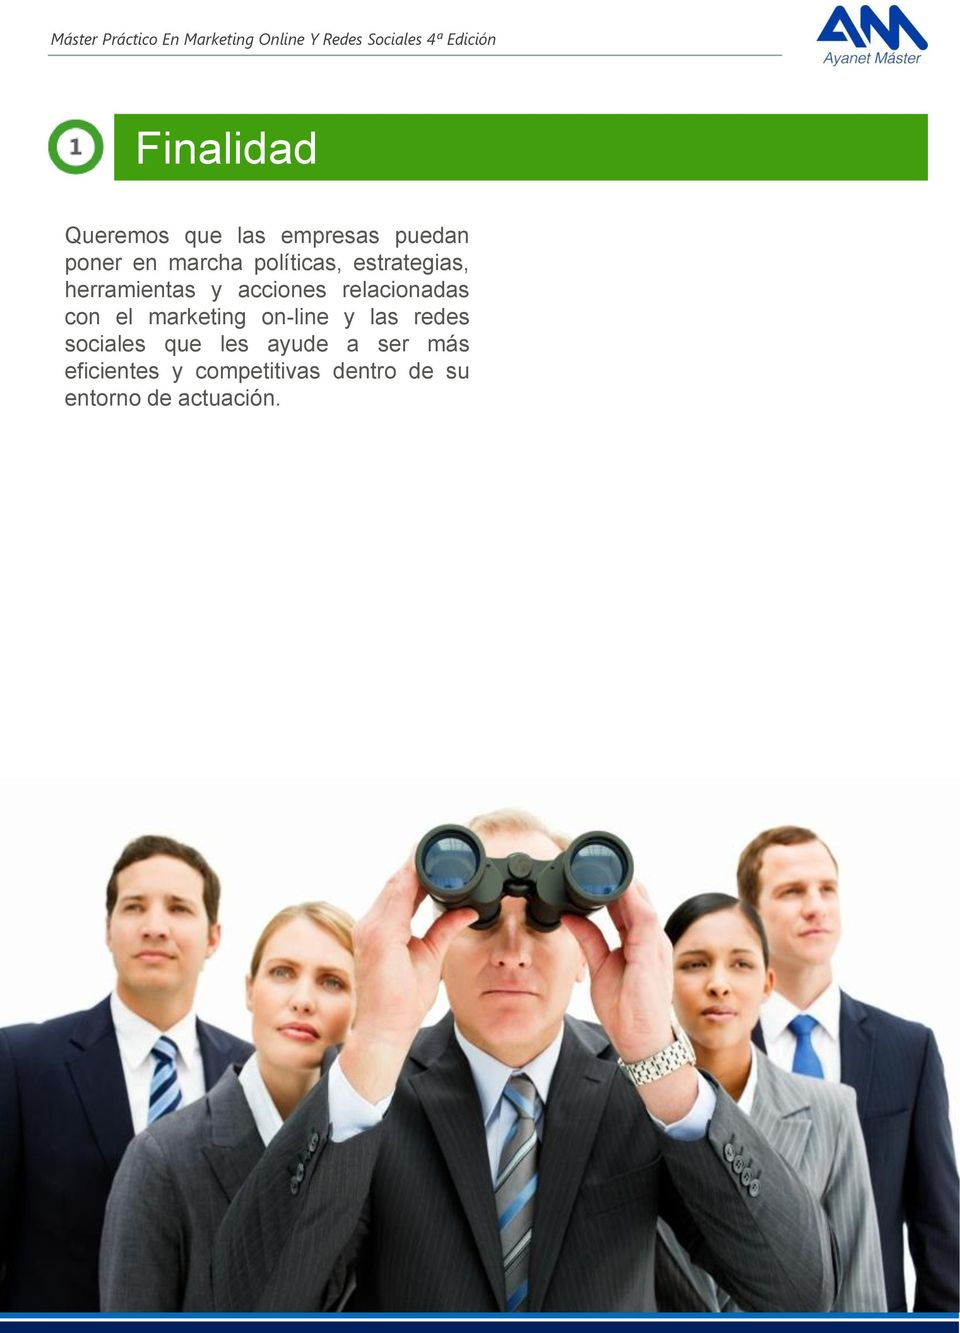 con el marketing on-line y las redes sociales que les ayude a